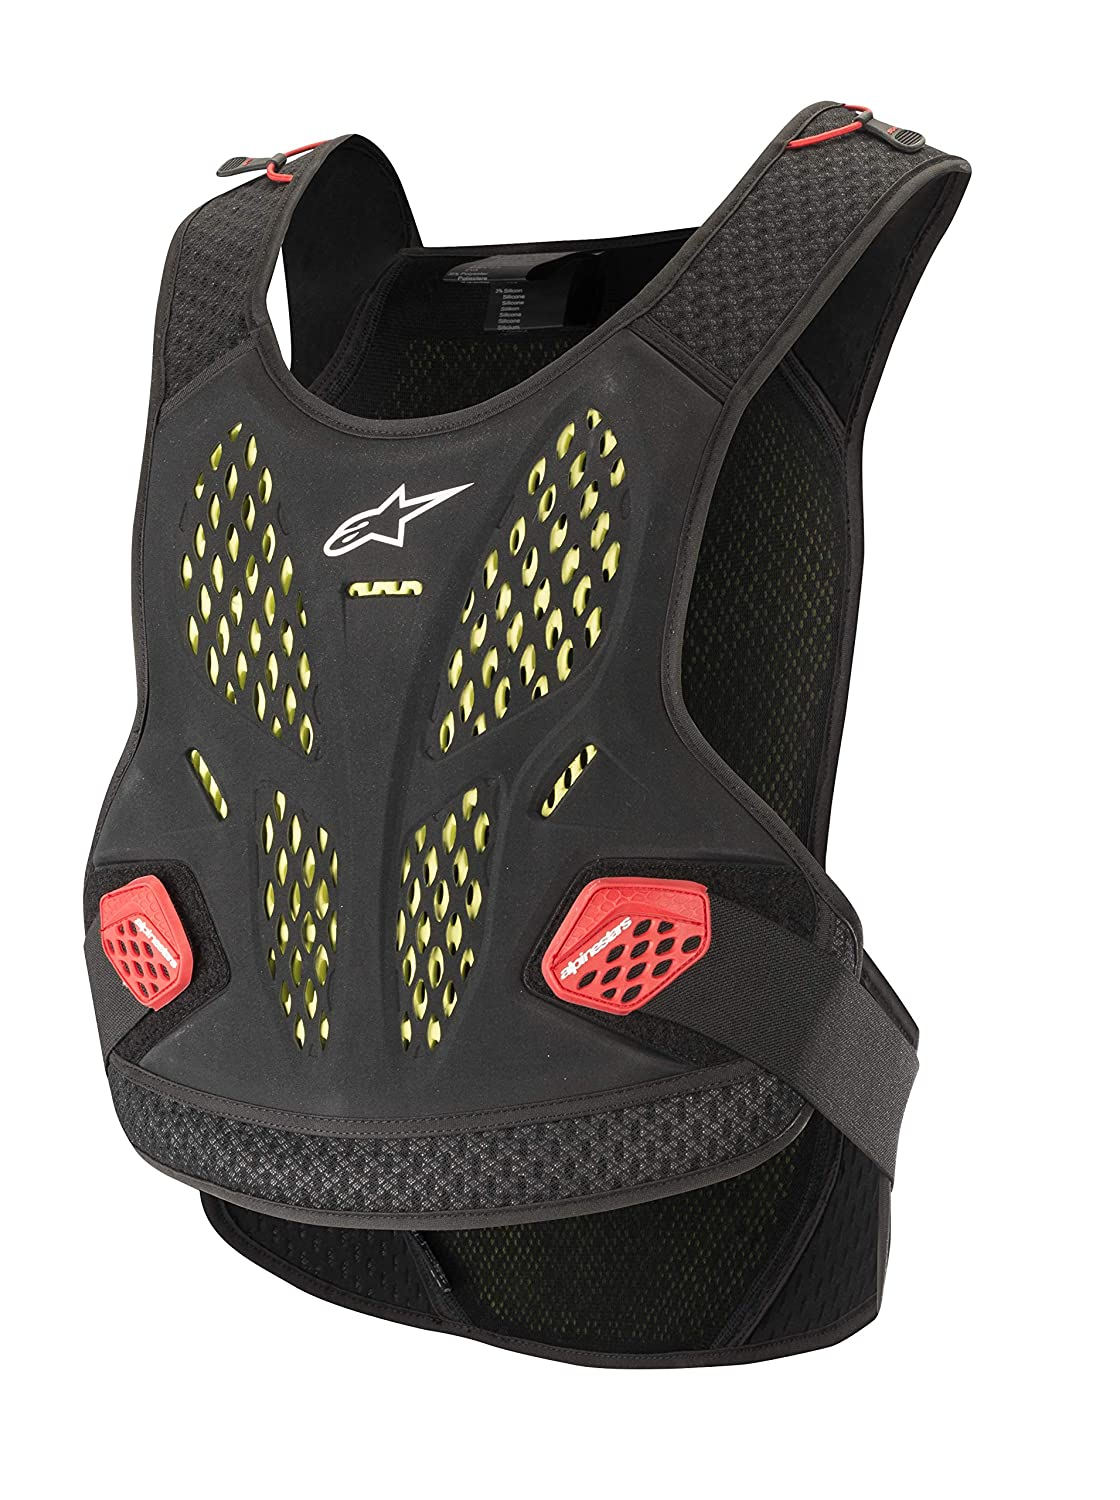 Sequence Off-Road Motocross Chest Protector (Extra Large/ 2 XL, Anthracite Red) Alpinestars 2701-0896